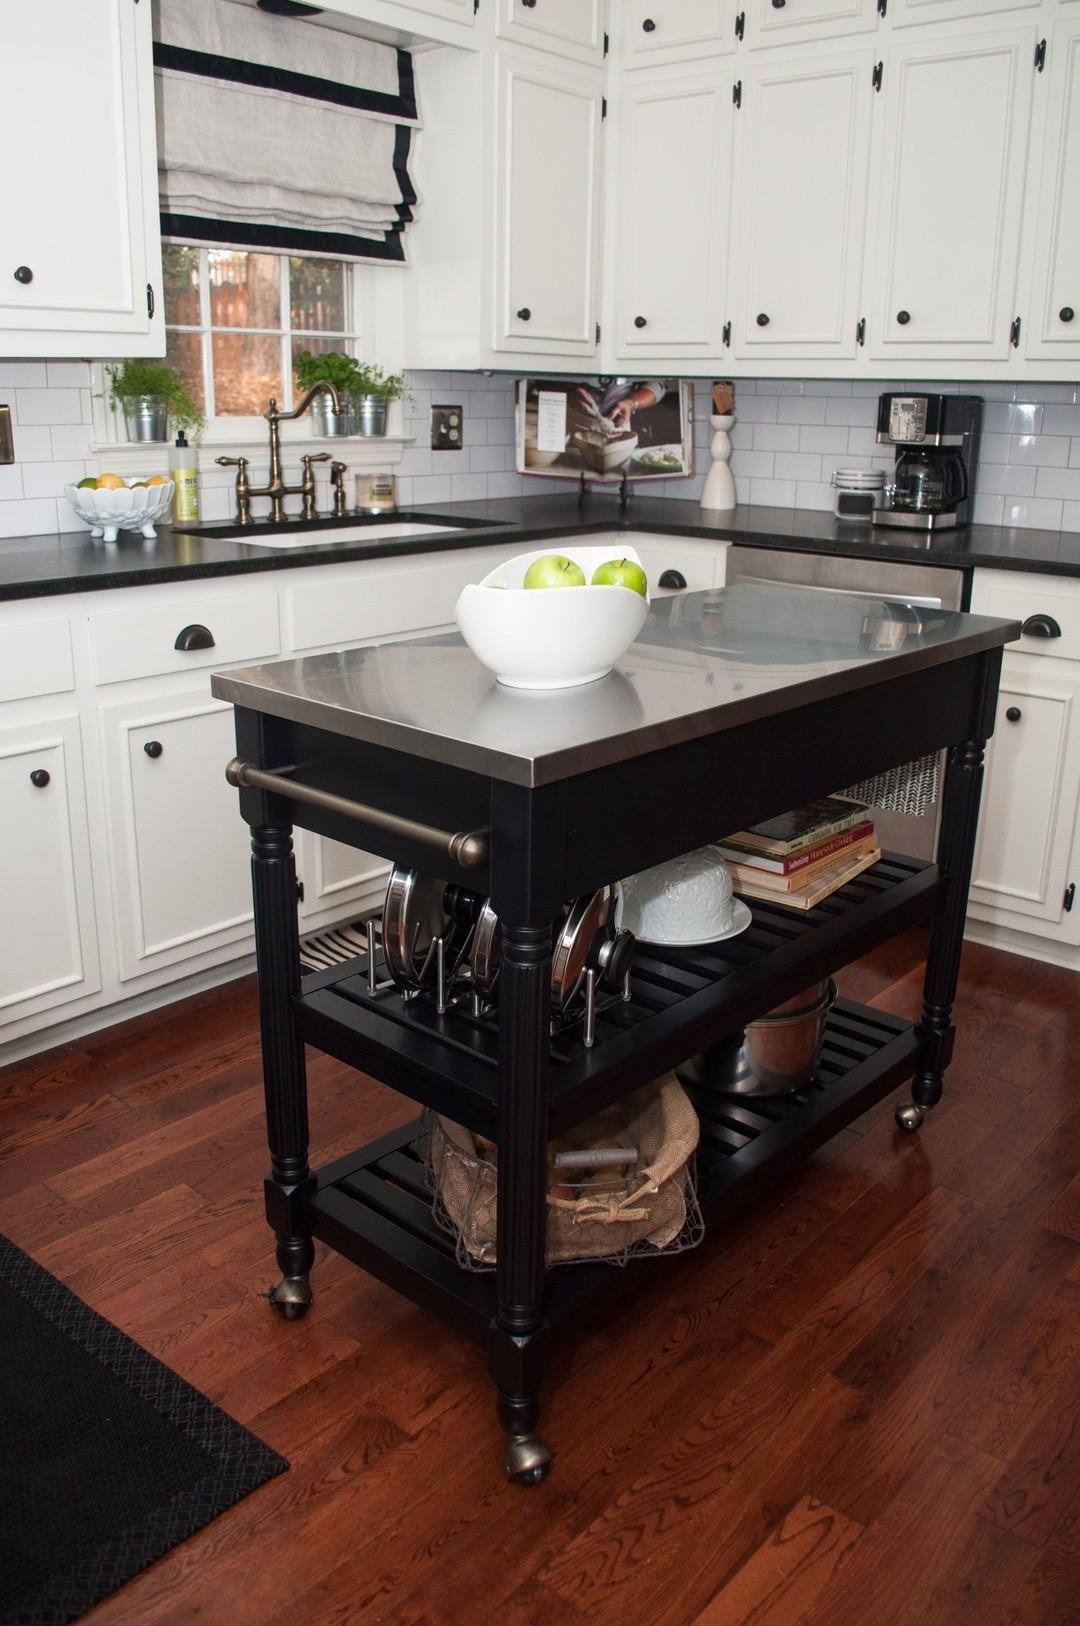 Simple Shaped Wooden Kitchen Cabinetry Island Ideas